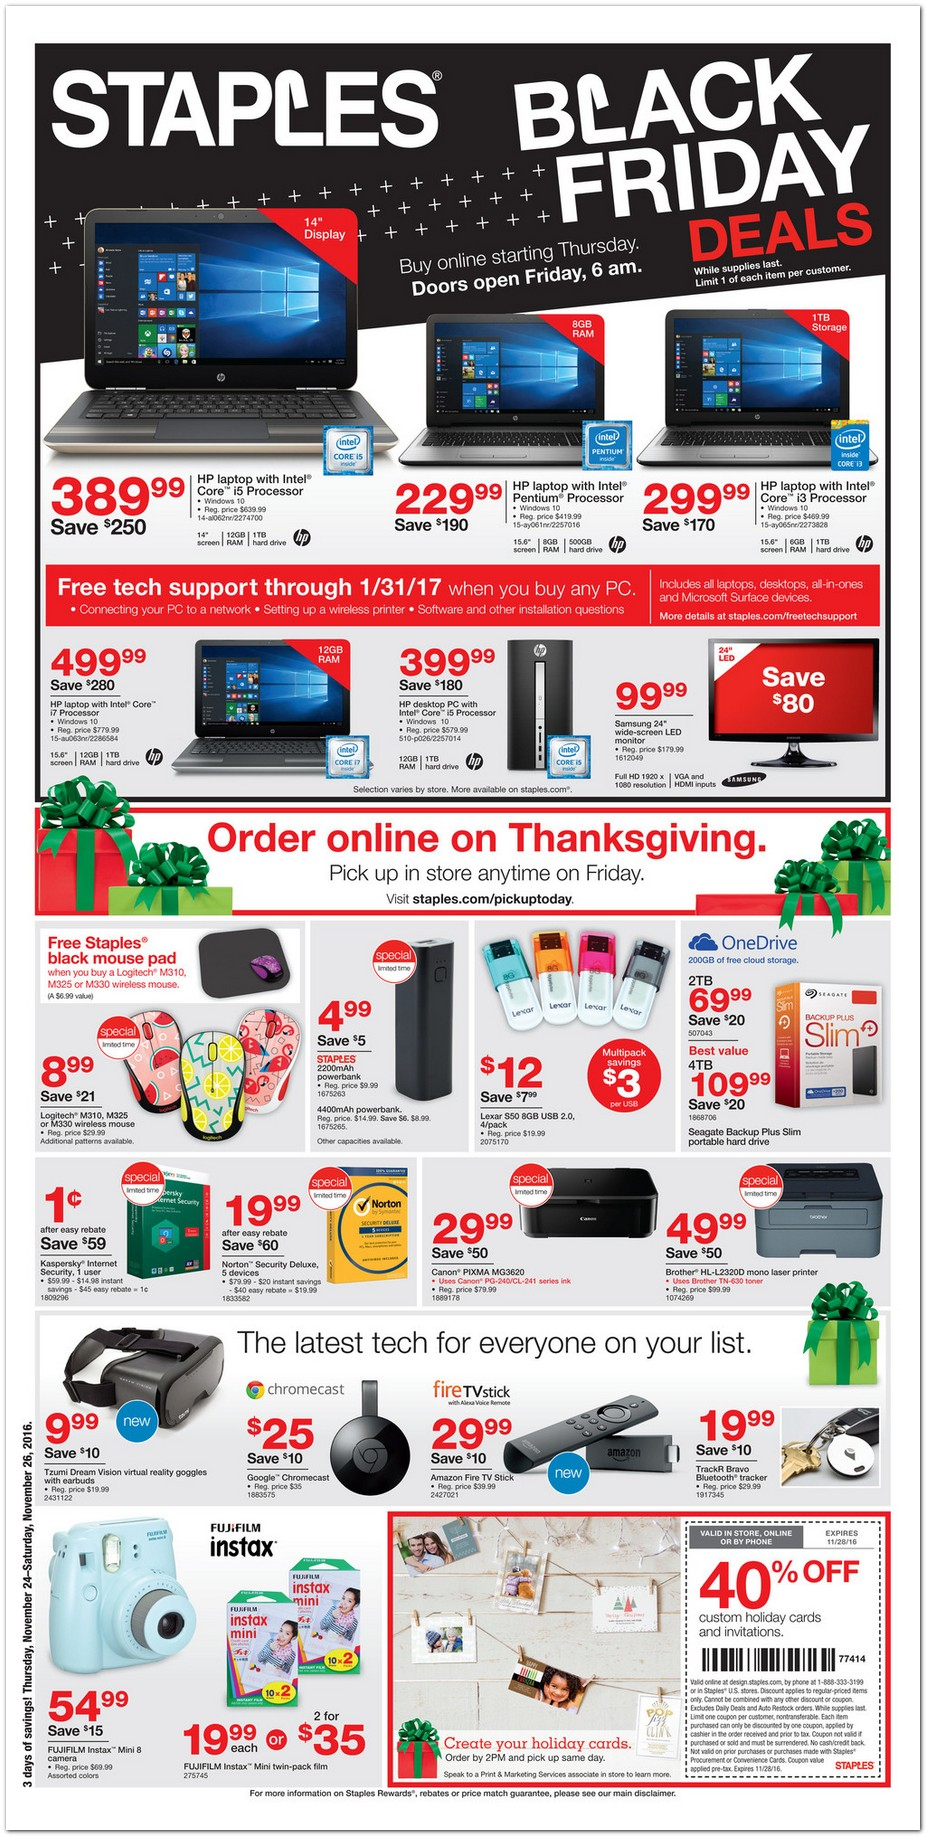 Ipad deals black friday 2018 staples